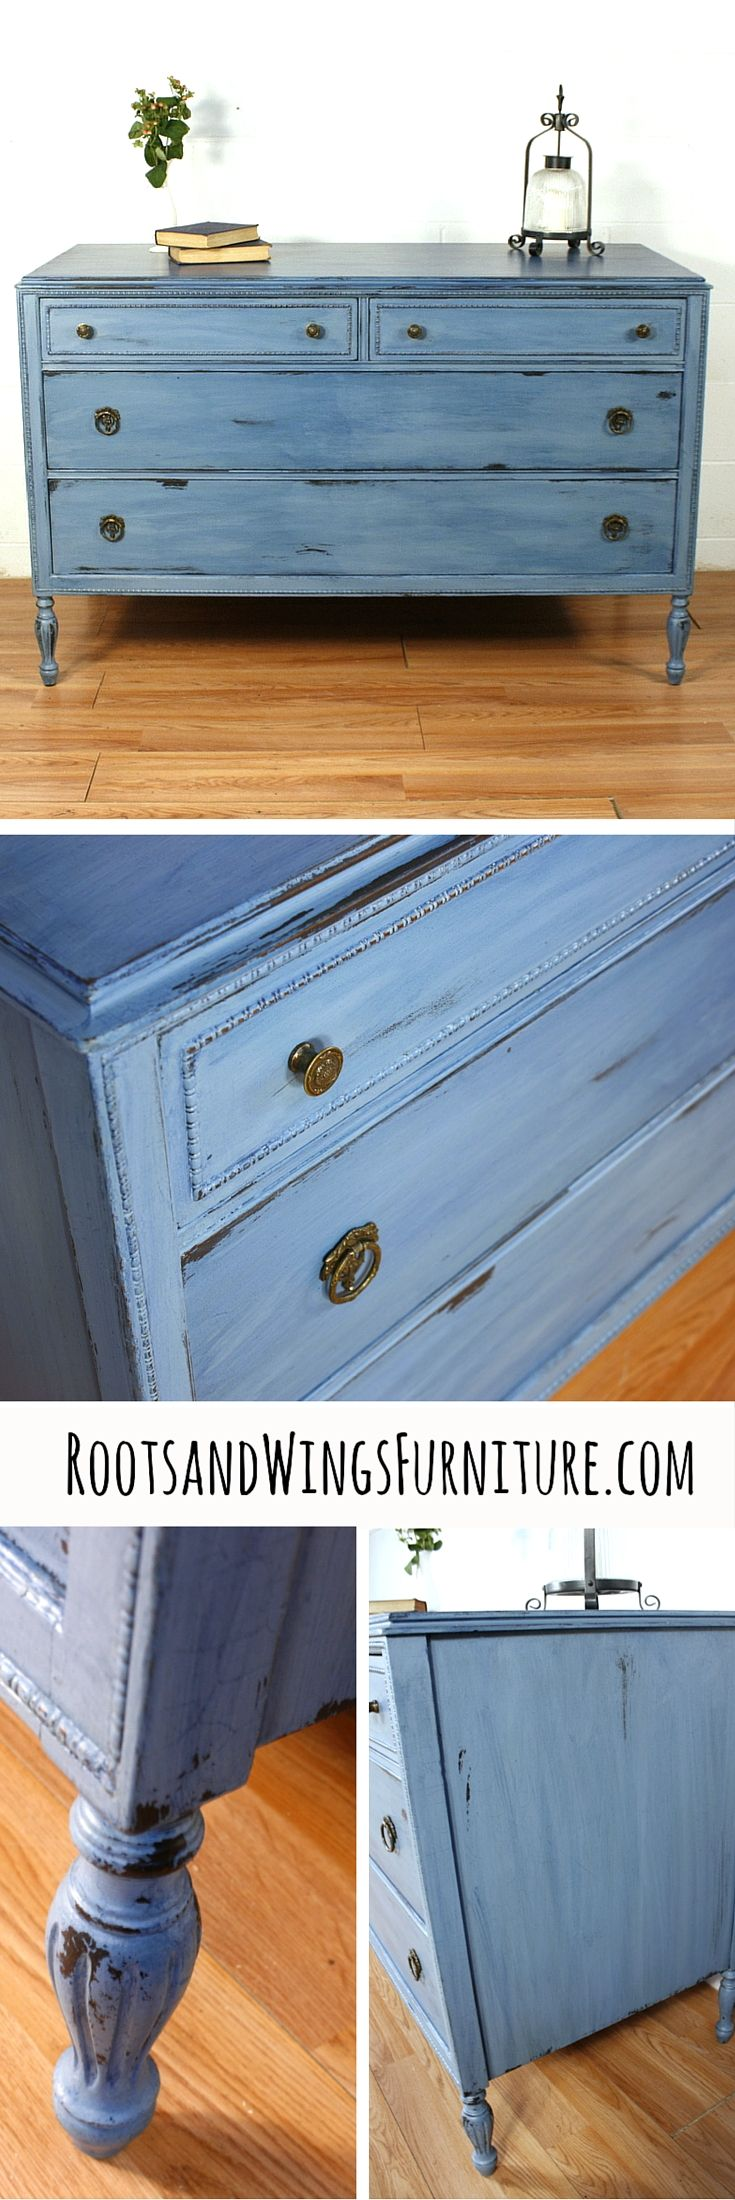 Antique Dresser Refinished In General Finishes Stillwater Blue By Roots And Wings Furniture Color Washed With Coastal Milk Paint